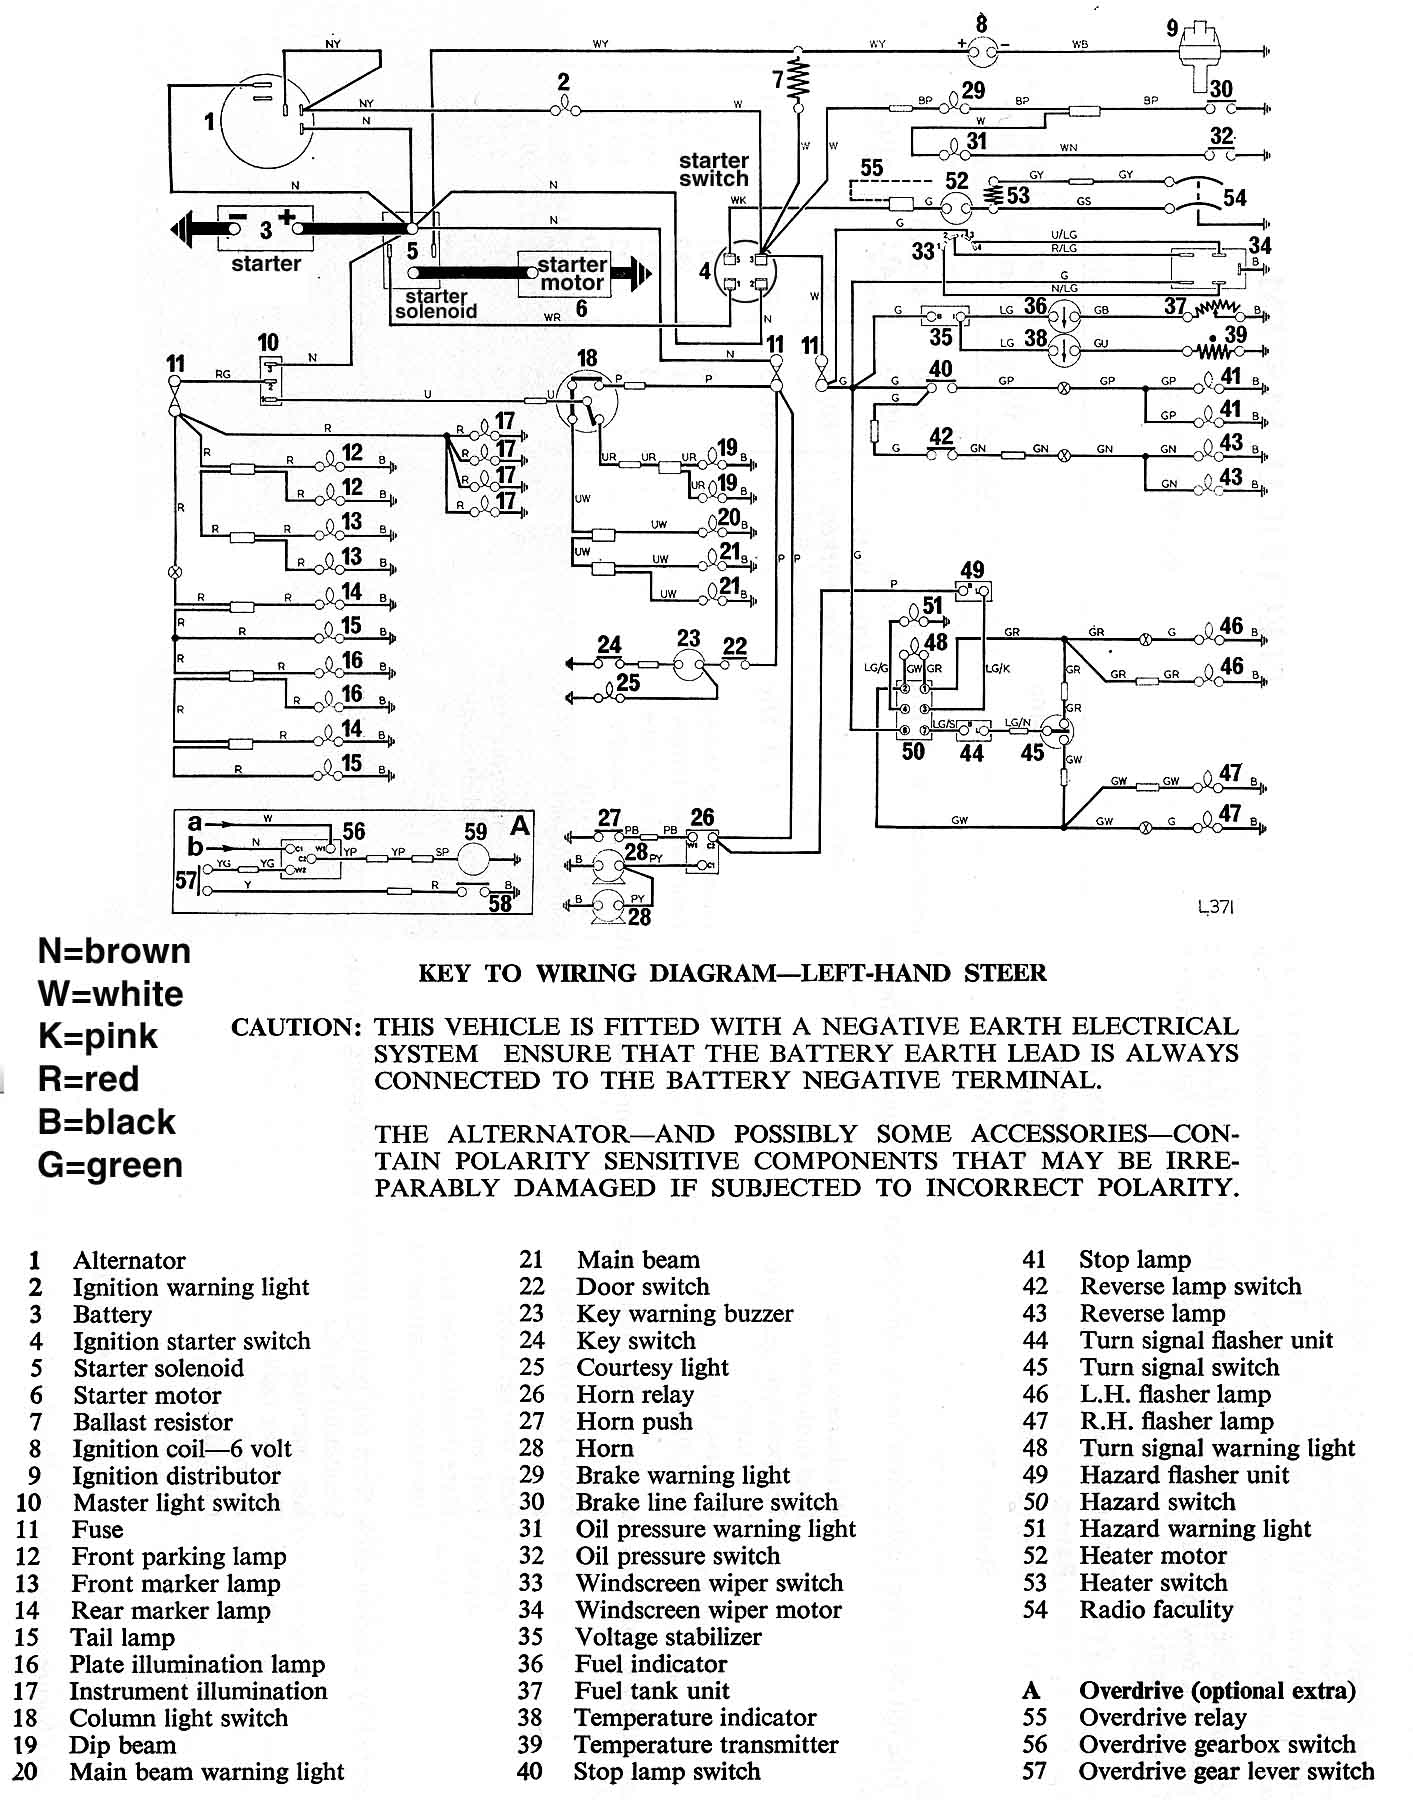 MKIVwire 1974 spitfire 1500 wire diagram spitfire & gt6 forum triumph 1965 Triumph Spitfire MK2 Wiring-Diagram at reclaimingppi.co